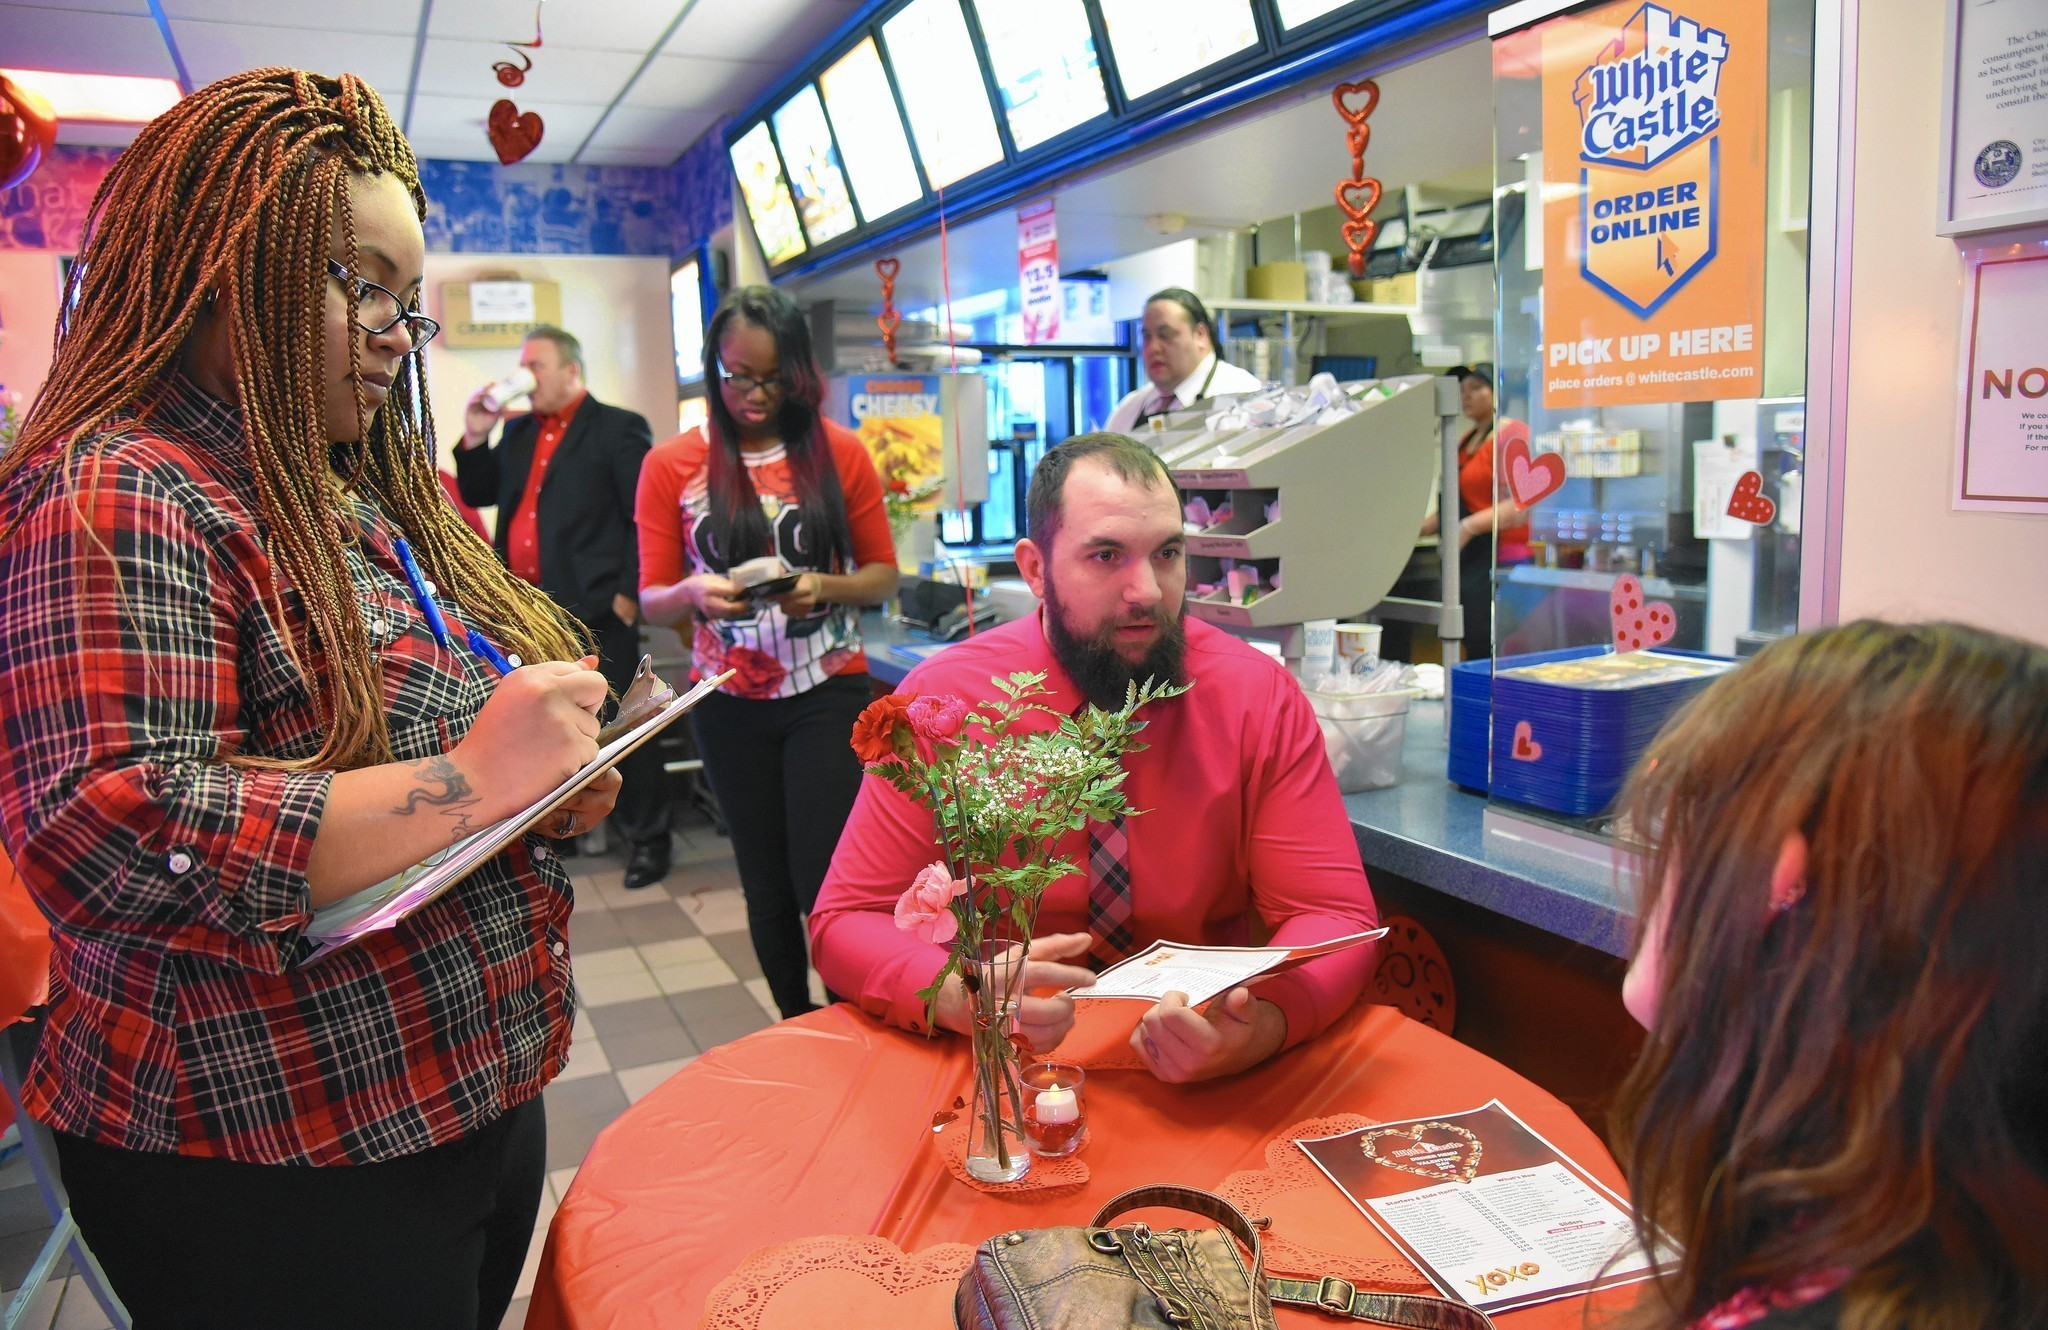 Northwest Side White Castle A Hot Reservation On Valentine